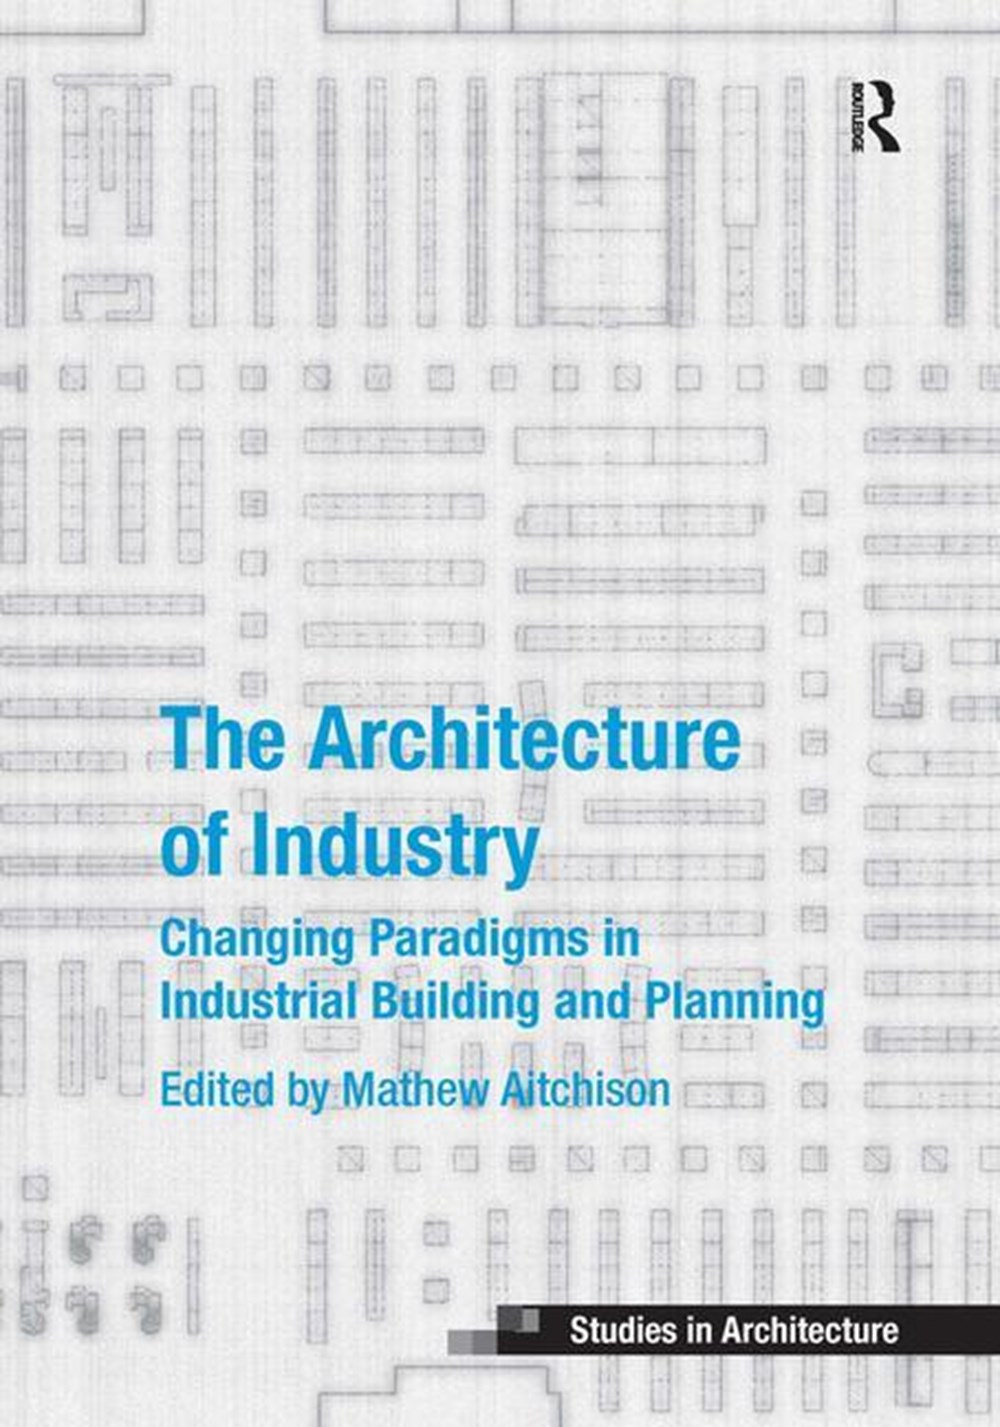 Architecture of Industry Changing Paradigms in Industrial Building and Planning